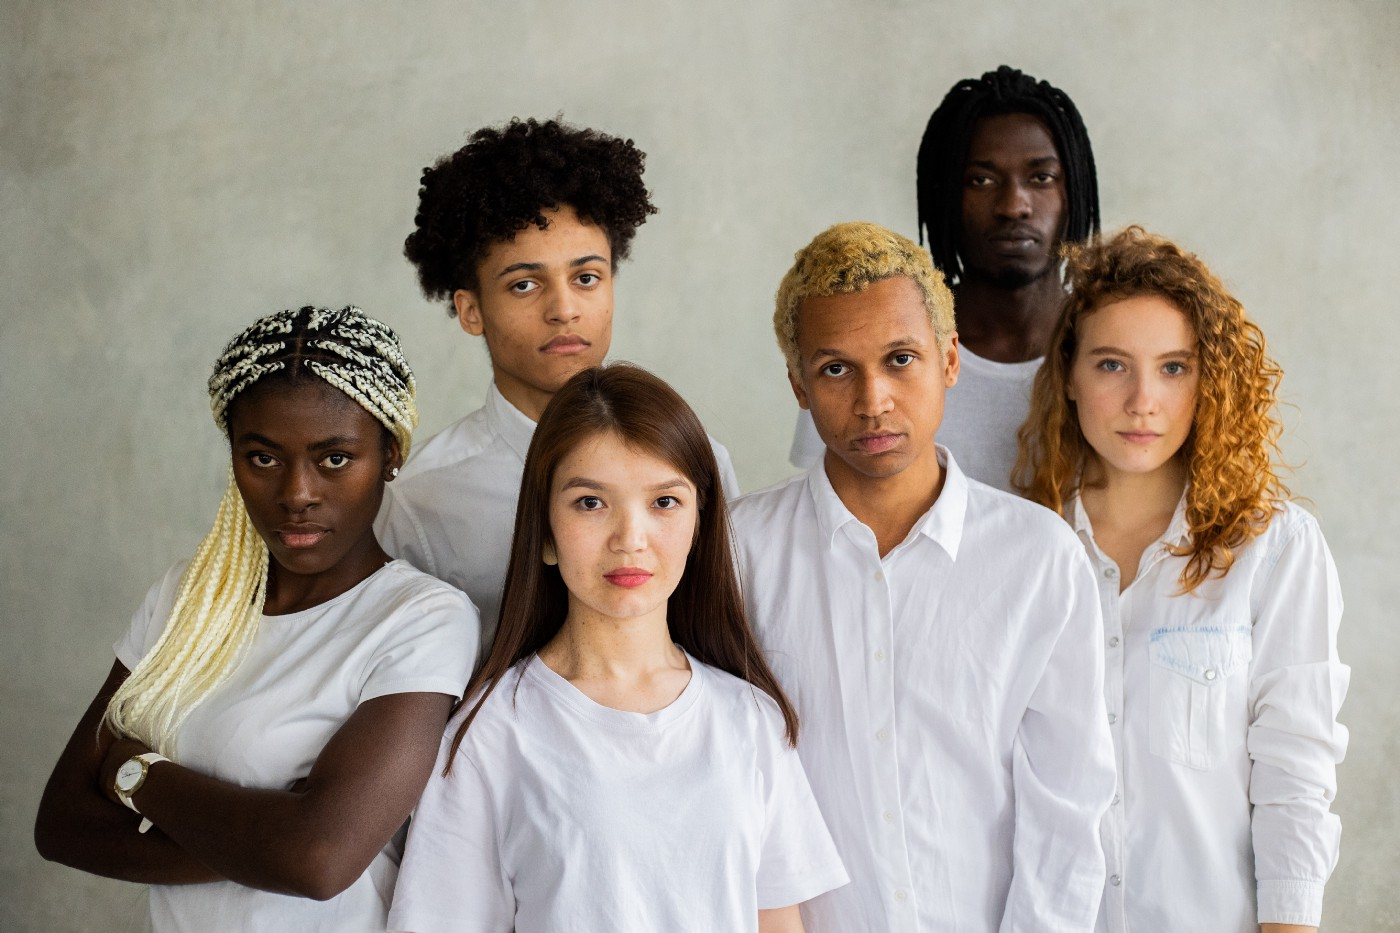 A group of diverse young people stand together, looking at the camera.